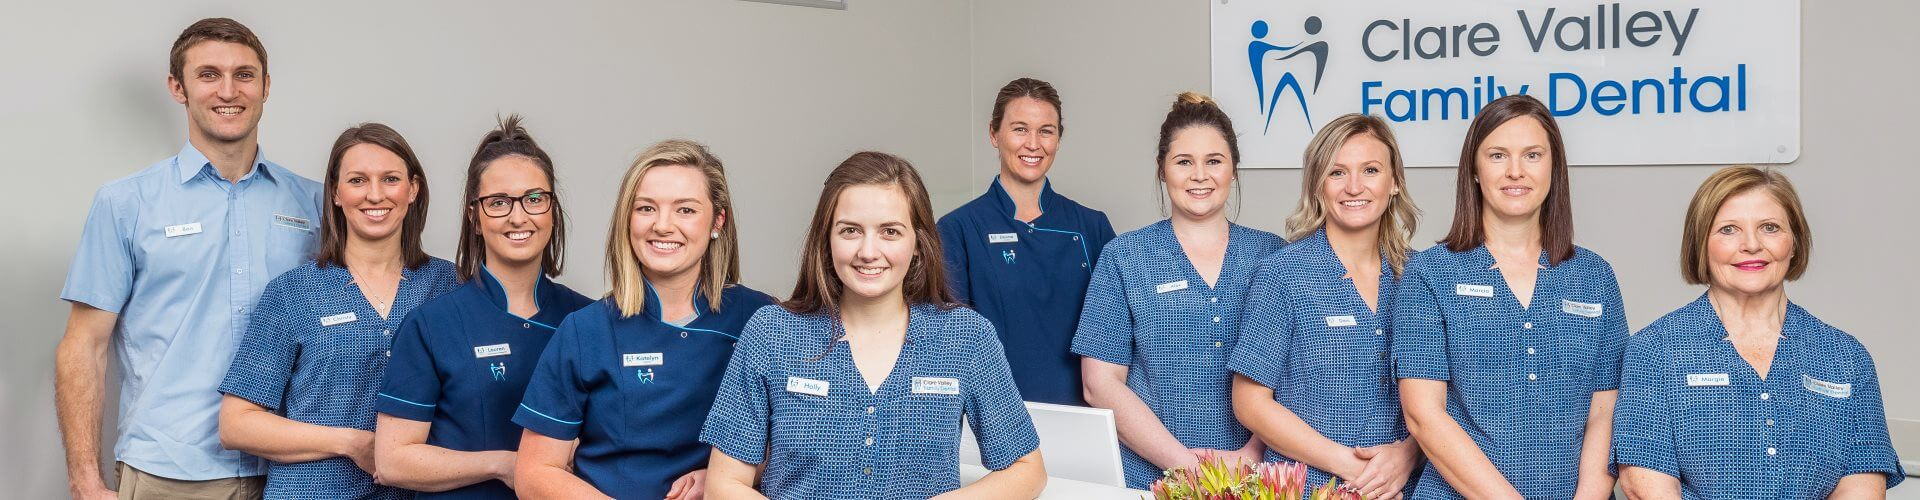 Clare Valley Dental Staff Picture